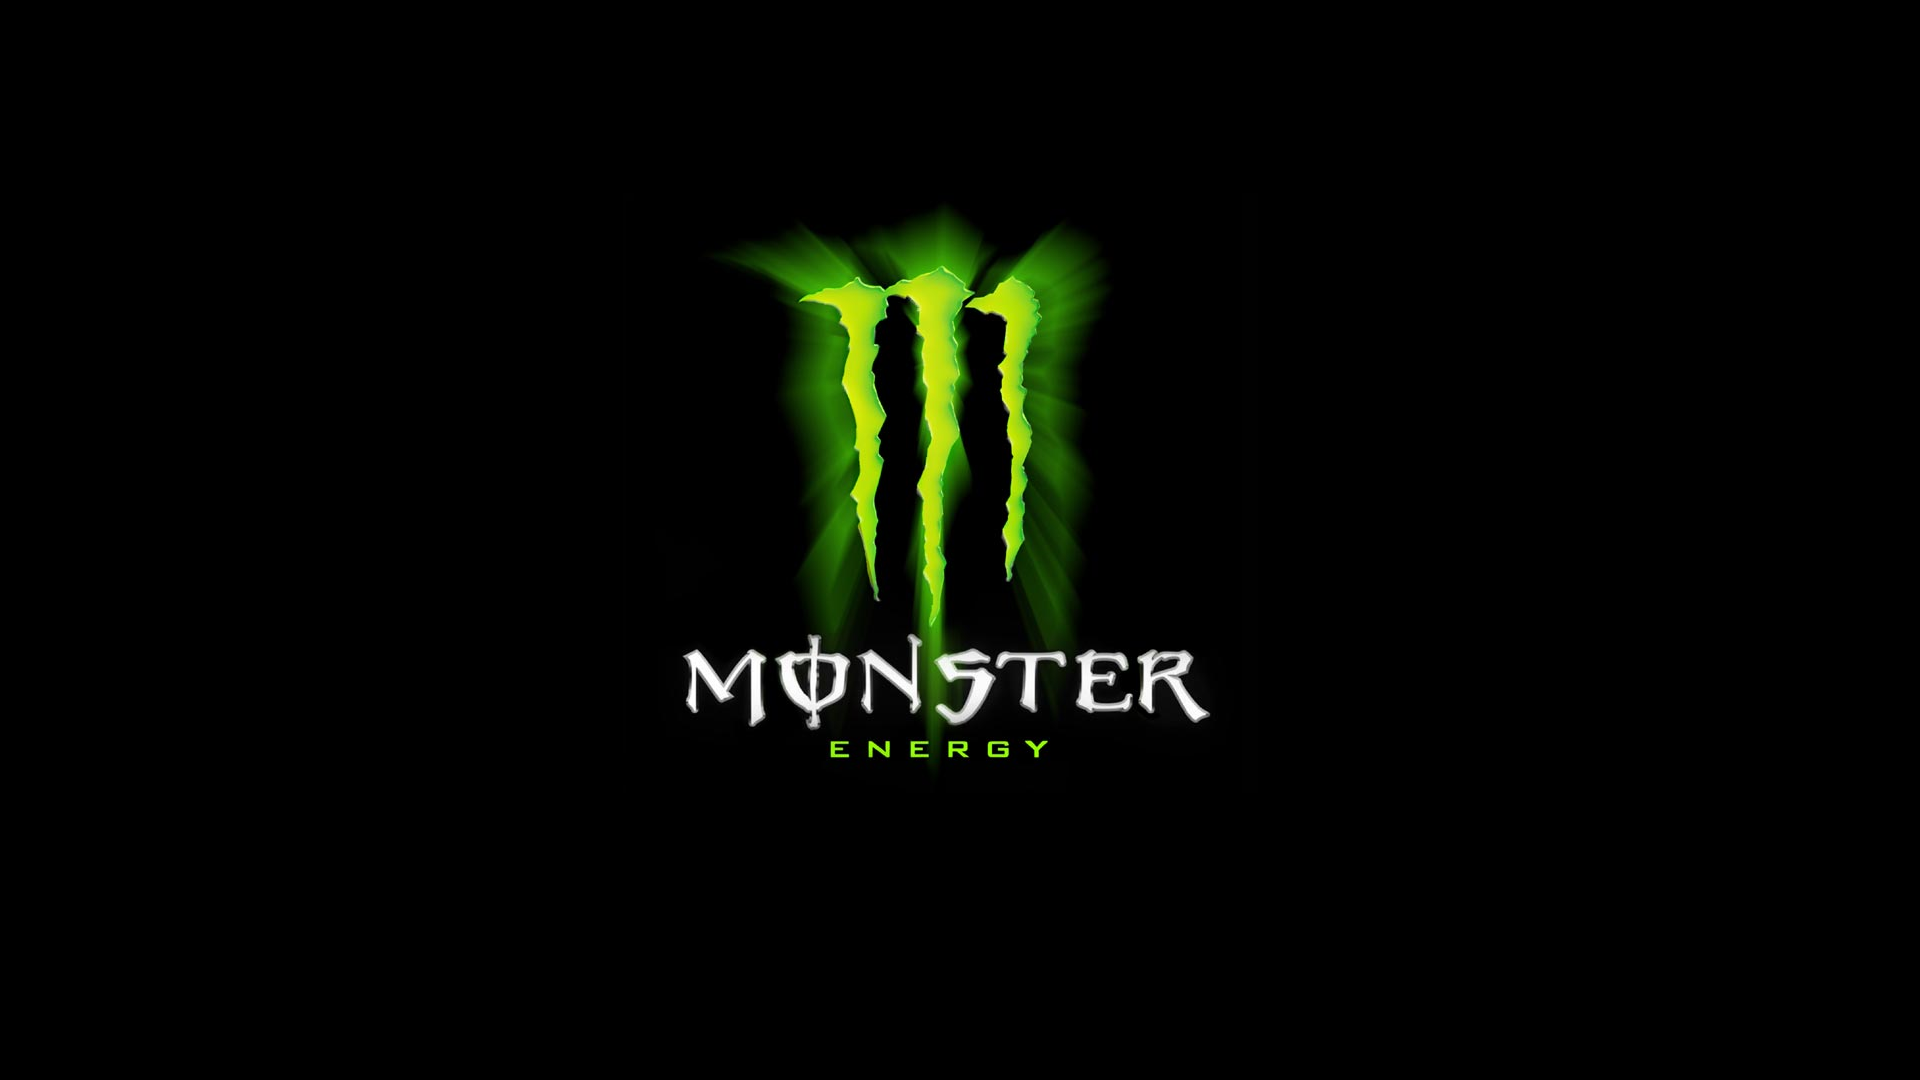 Monster Energy Logo Wallpapers - Wallpaper Cave